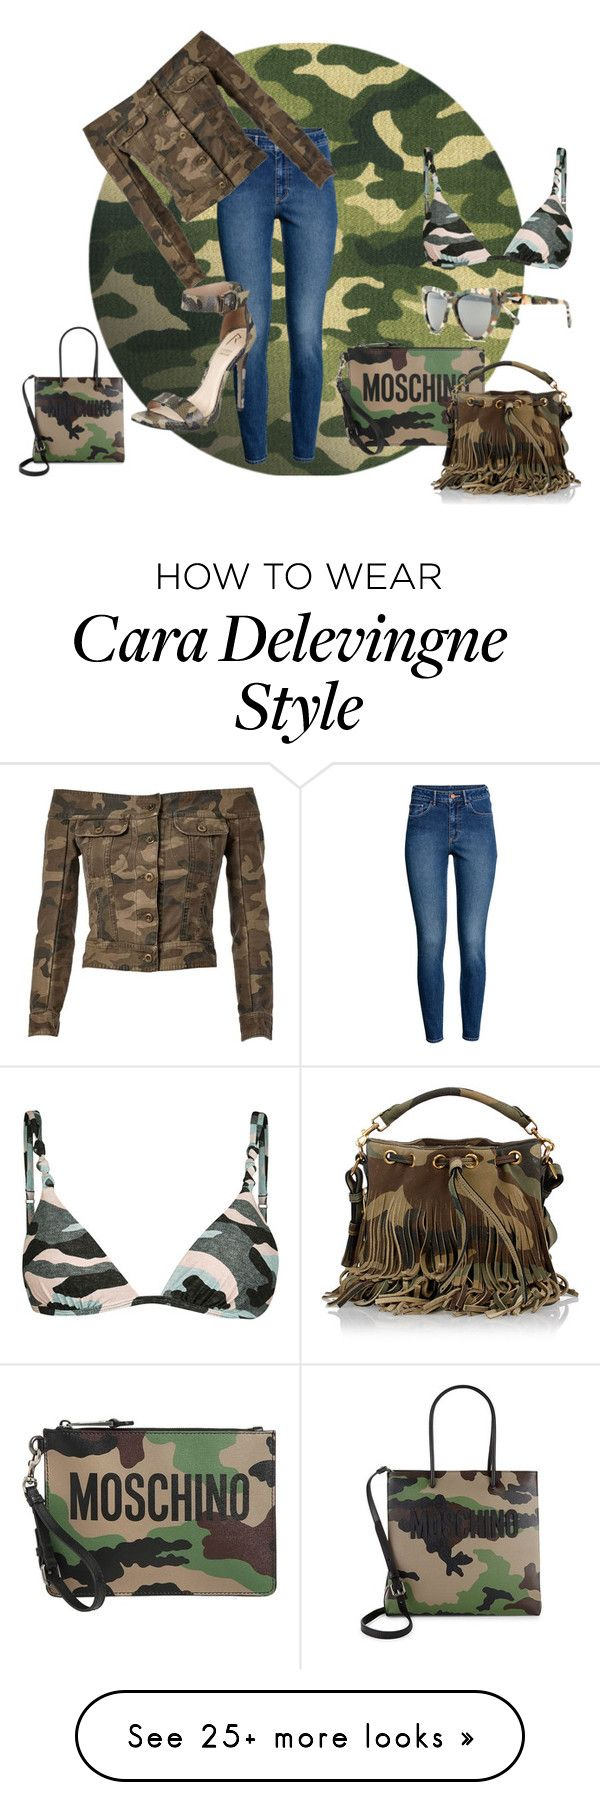 """camouflge"" by mimmiandkinkistatementjewelry on Polyvore featuring H&M, Faith Connexion, River Island, Moschino, Prism and Yves Saint Laurent"